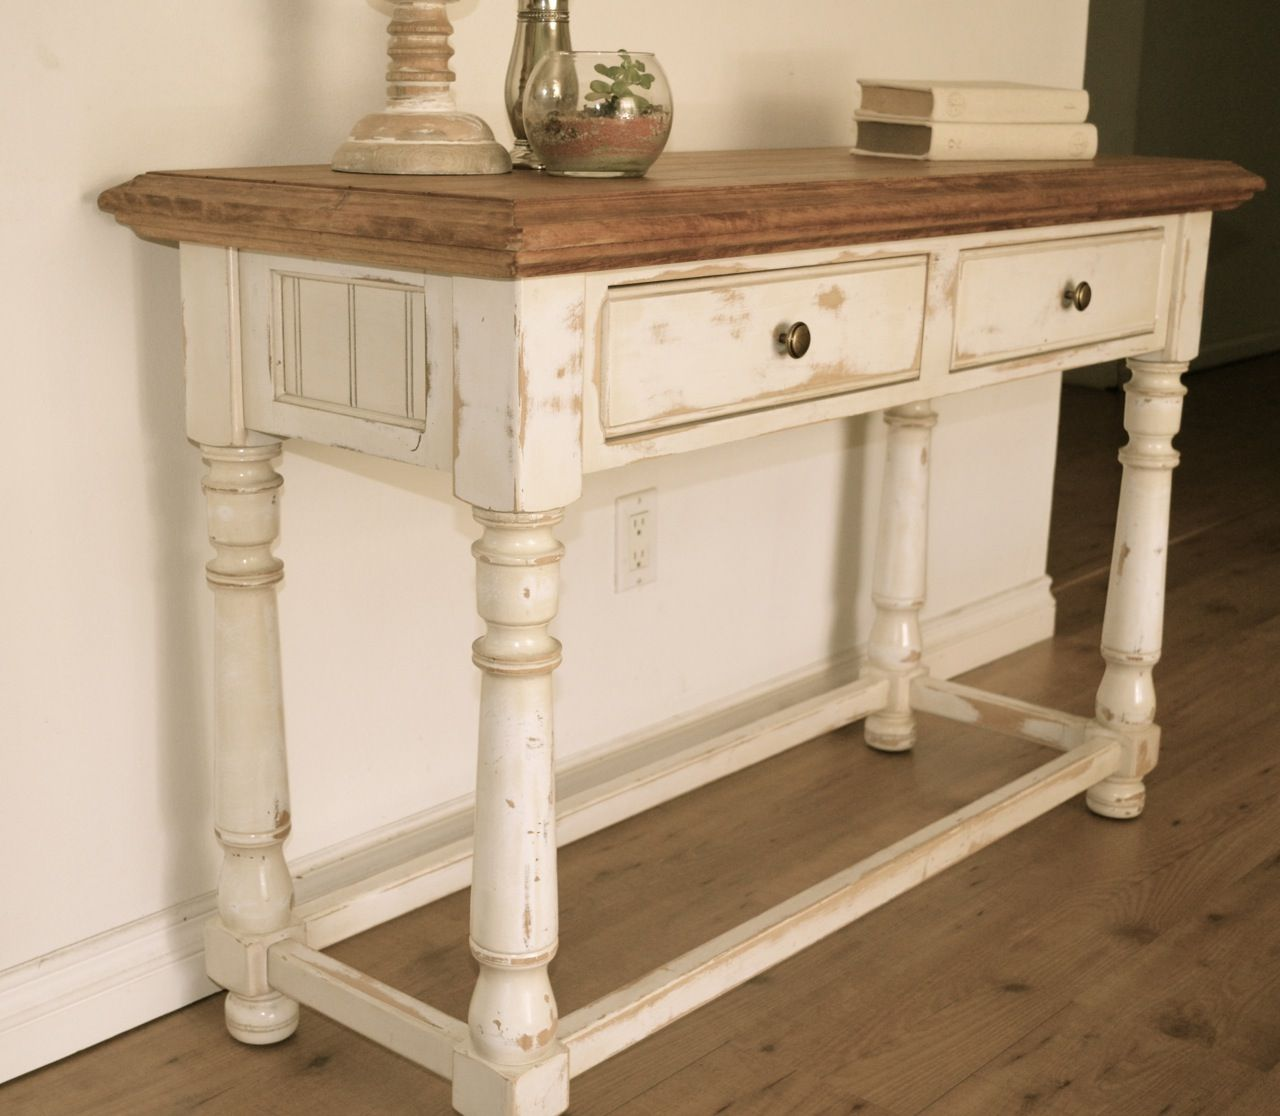 Farmhouse style console table. Distressed white paint